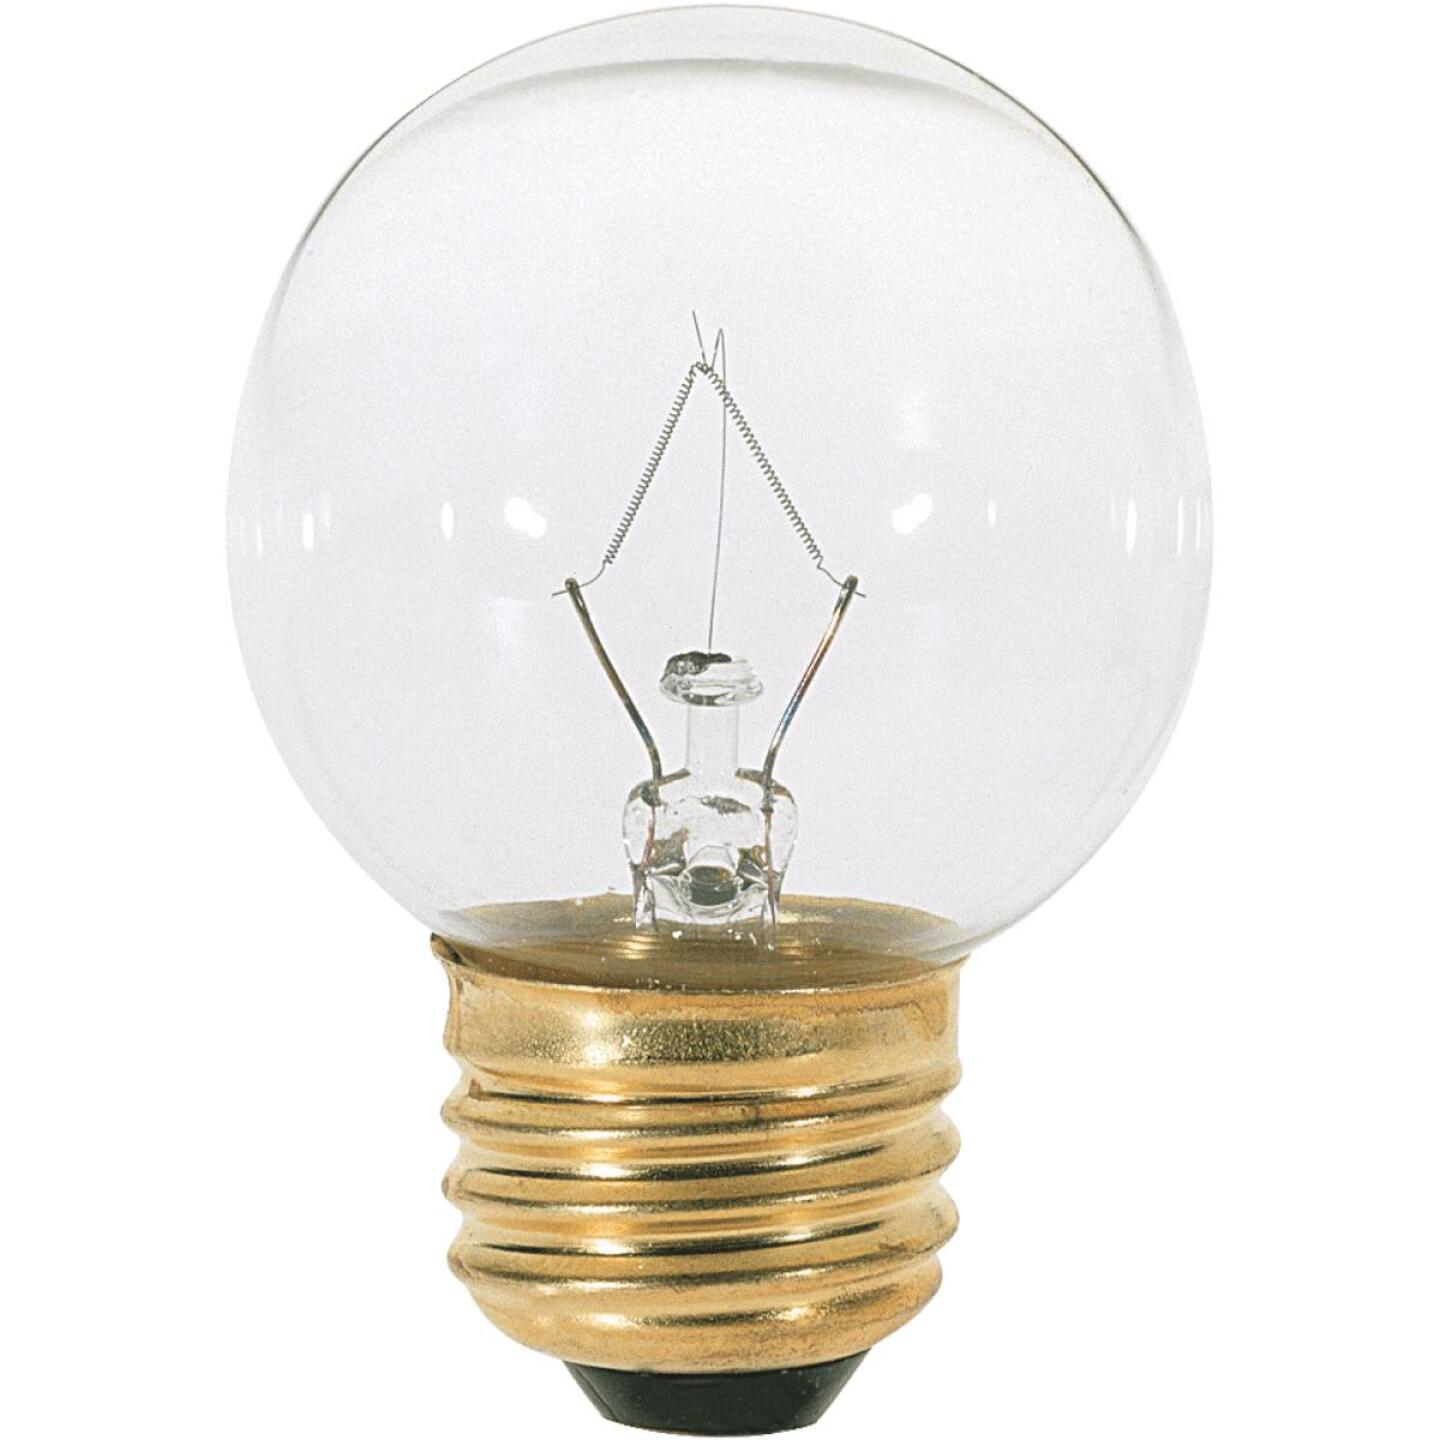 Satco 25W Clear Medium G16.5 Incandescent Globe Light Bulb Image 1